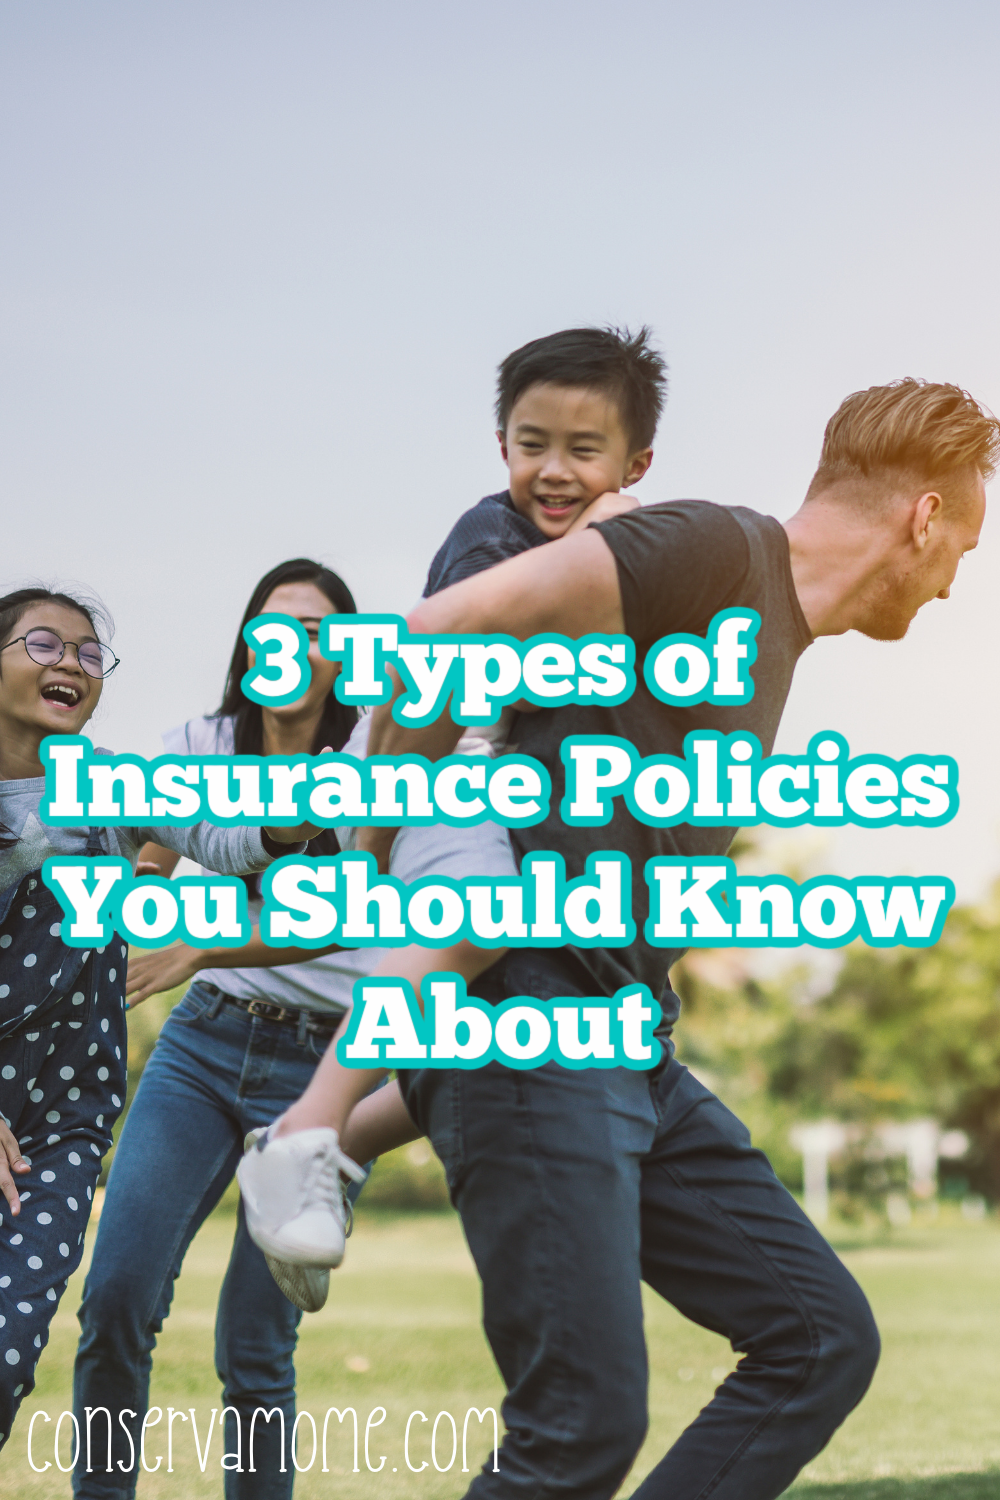 3 Types of Insurance Policies You Should Know About